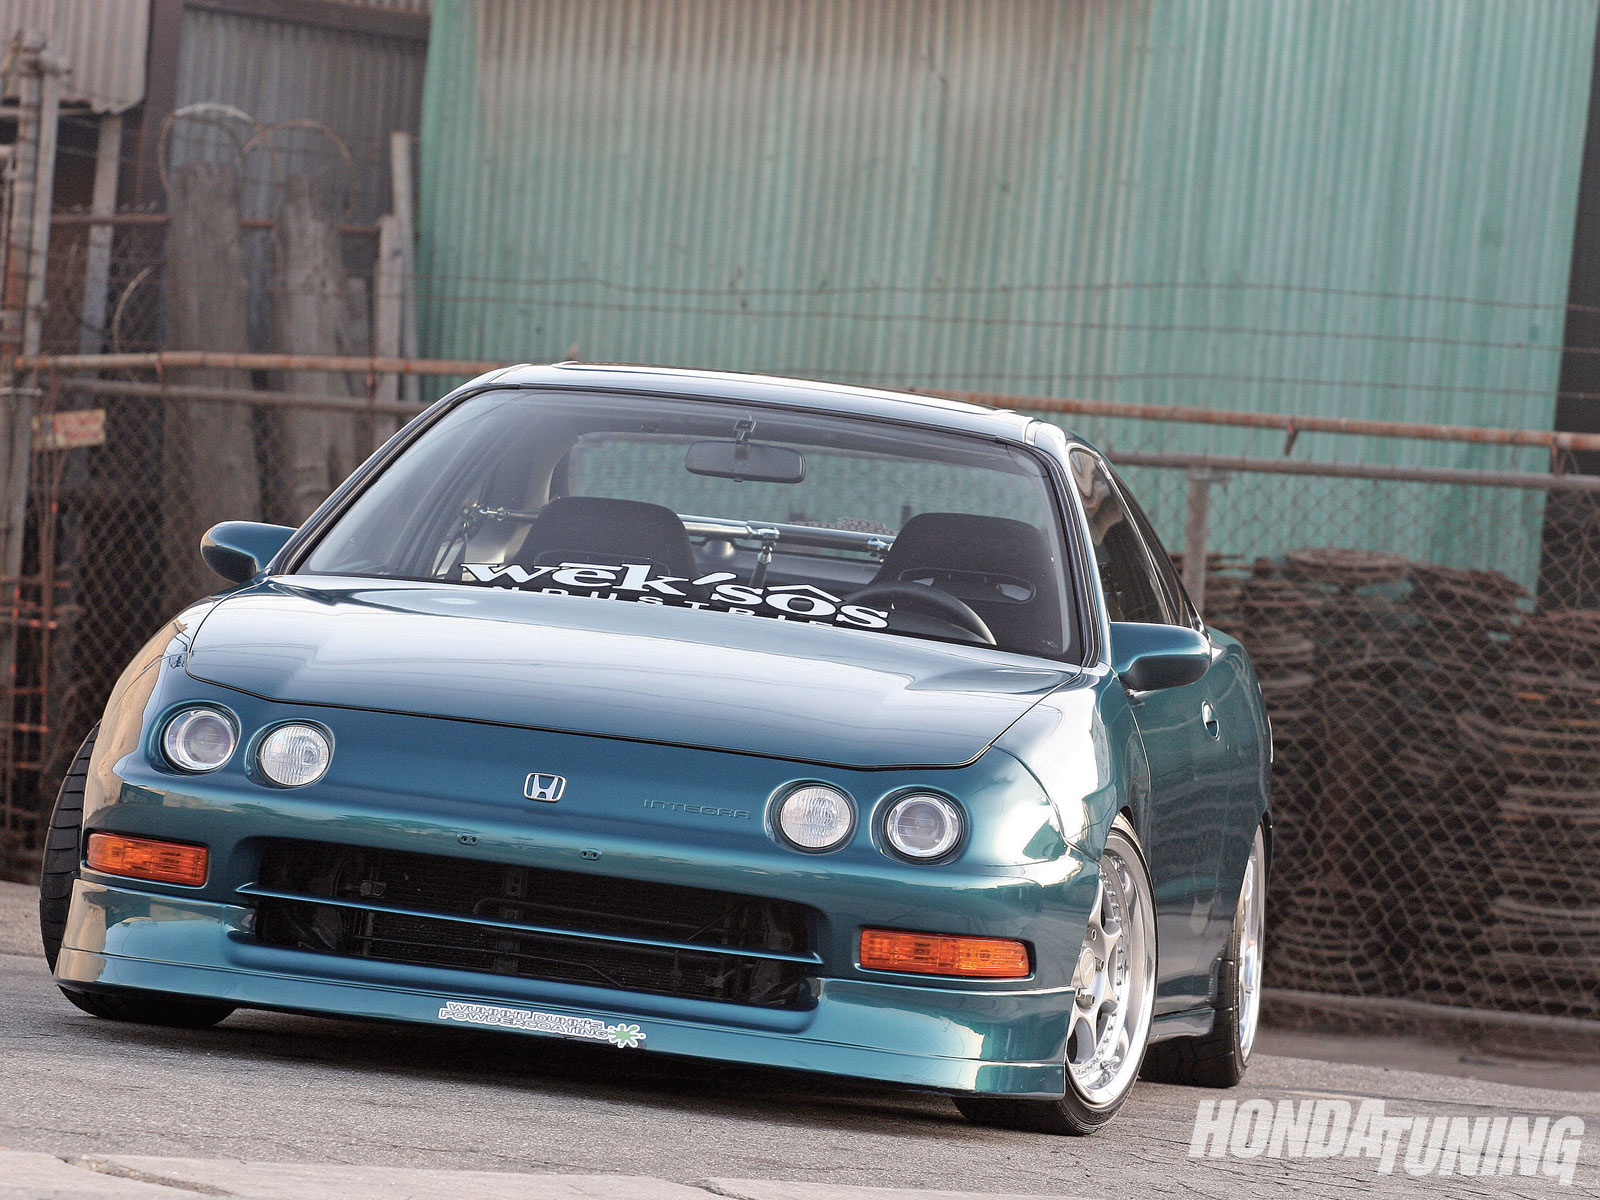 HONDA INTEGRA green